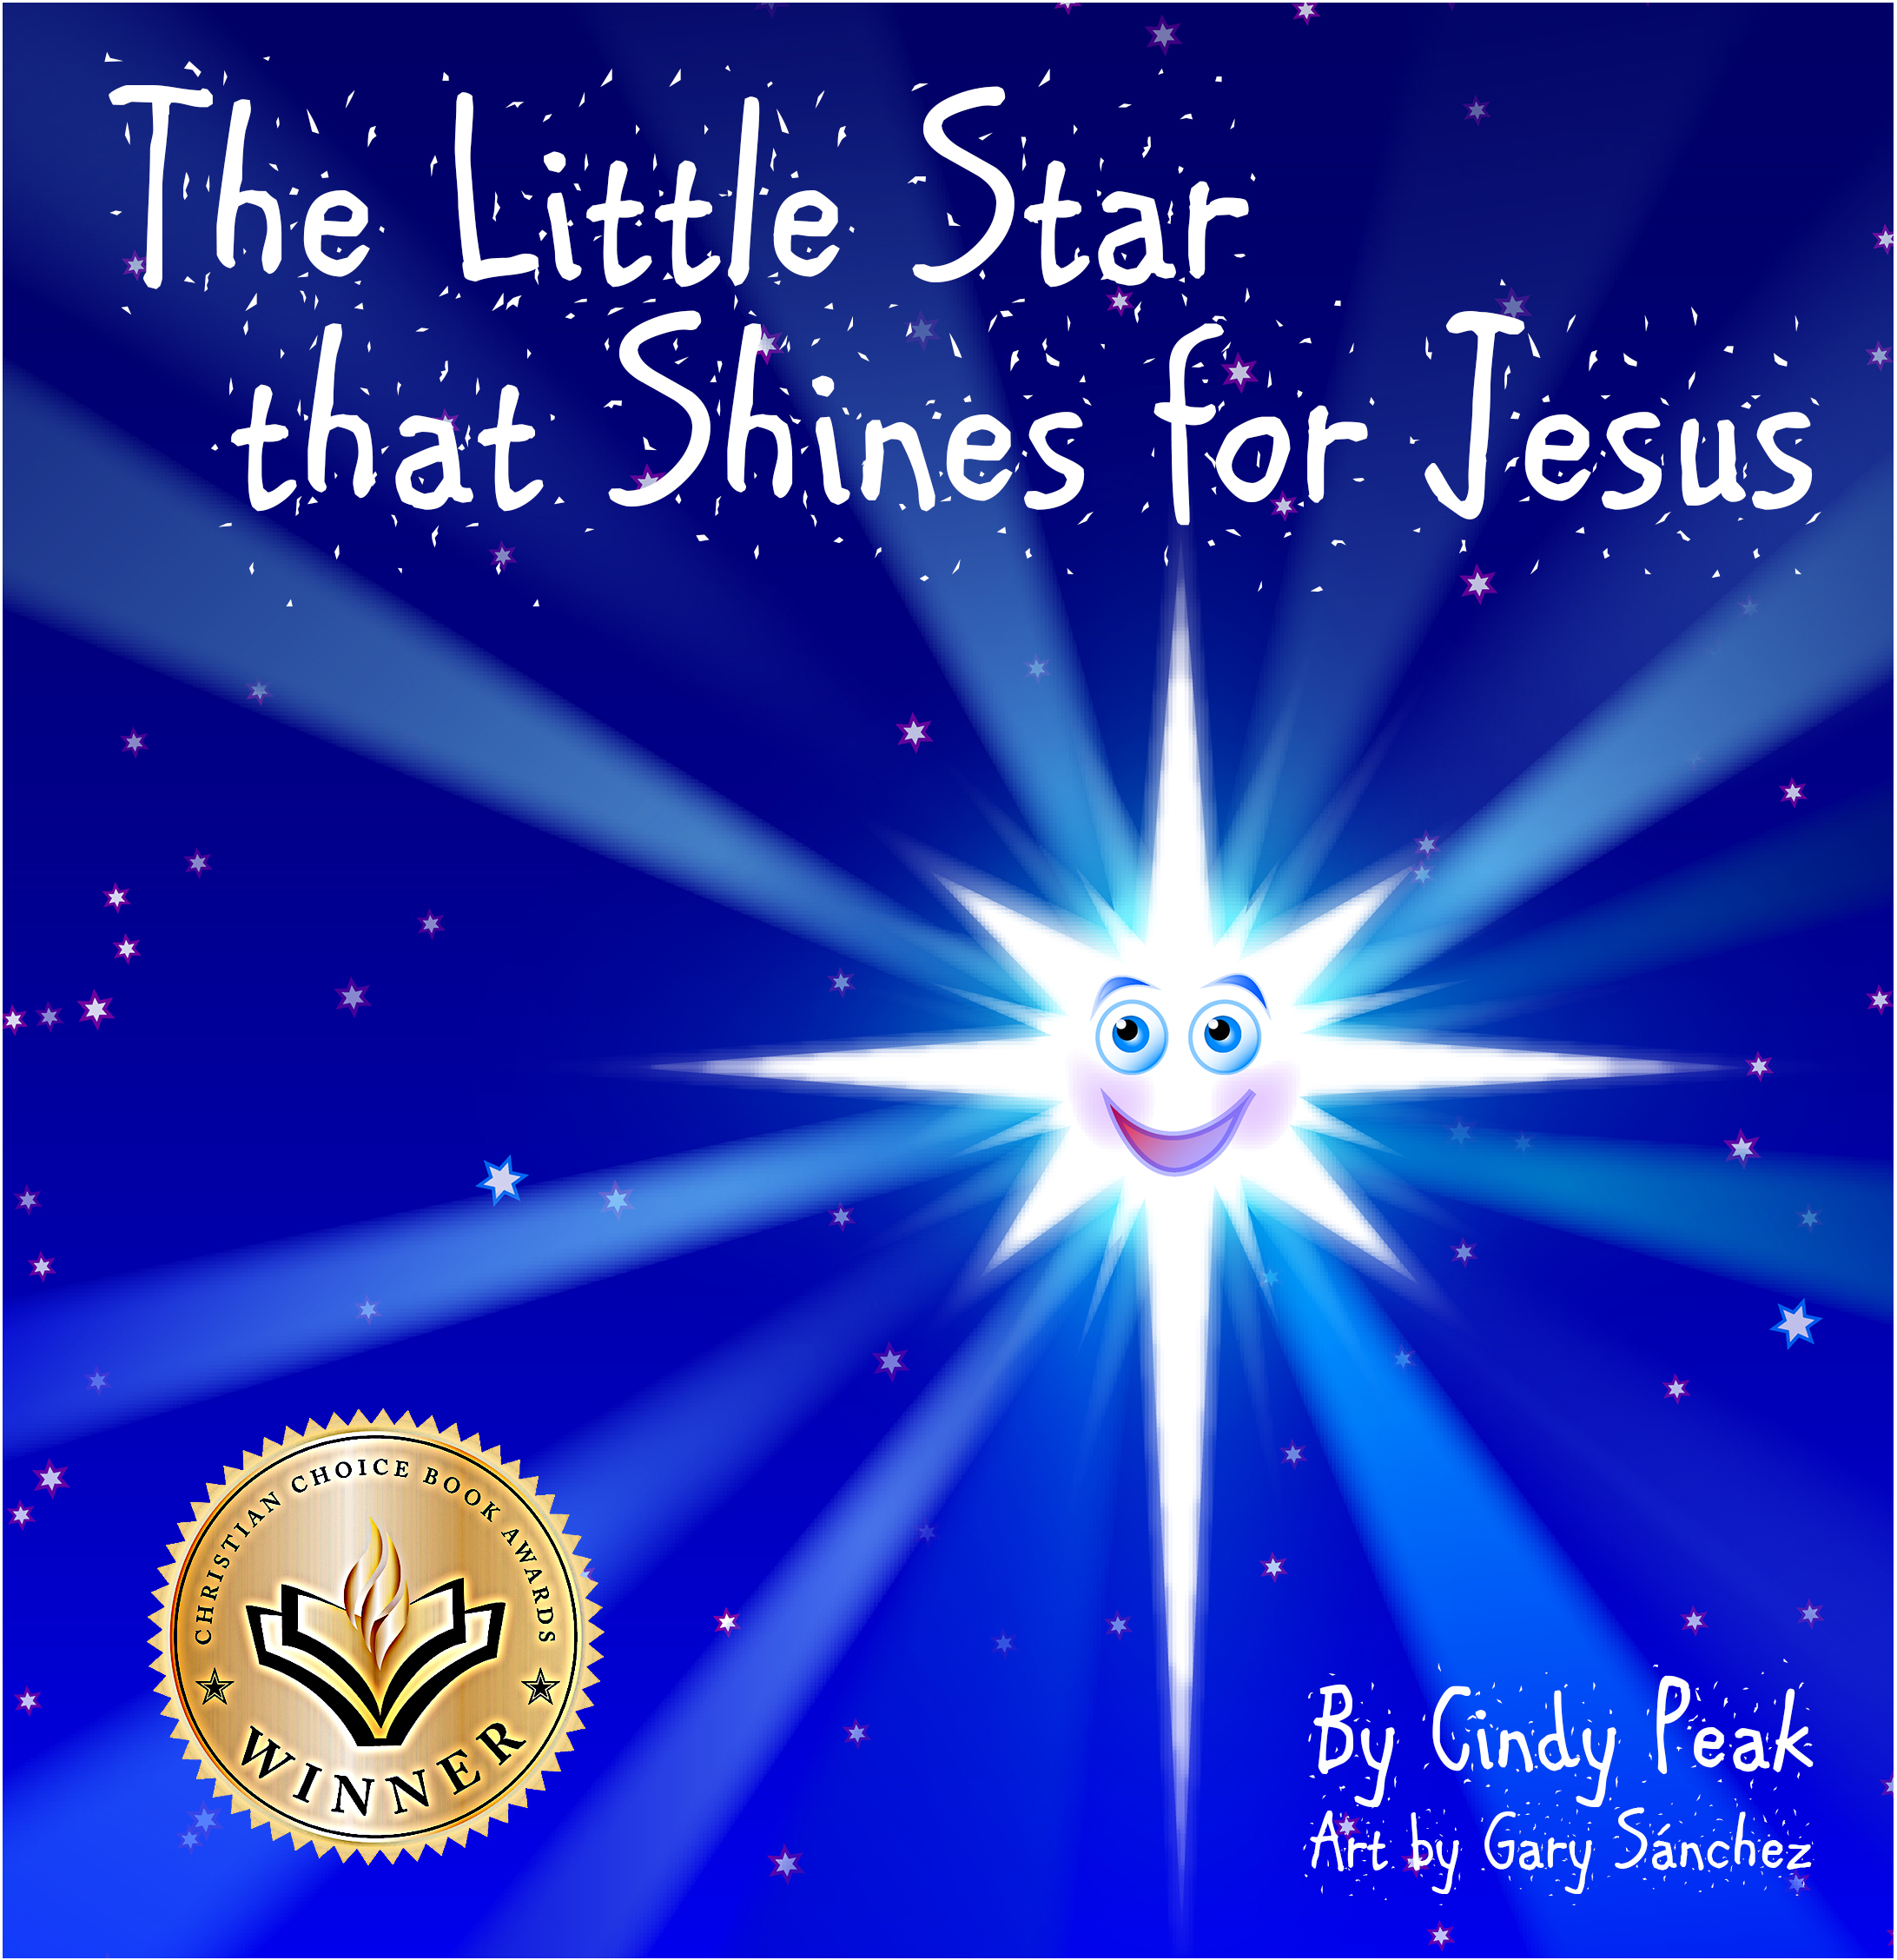 The Little Star that Shines